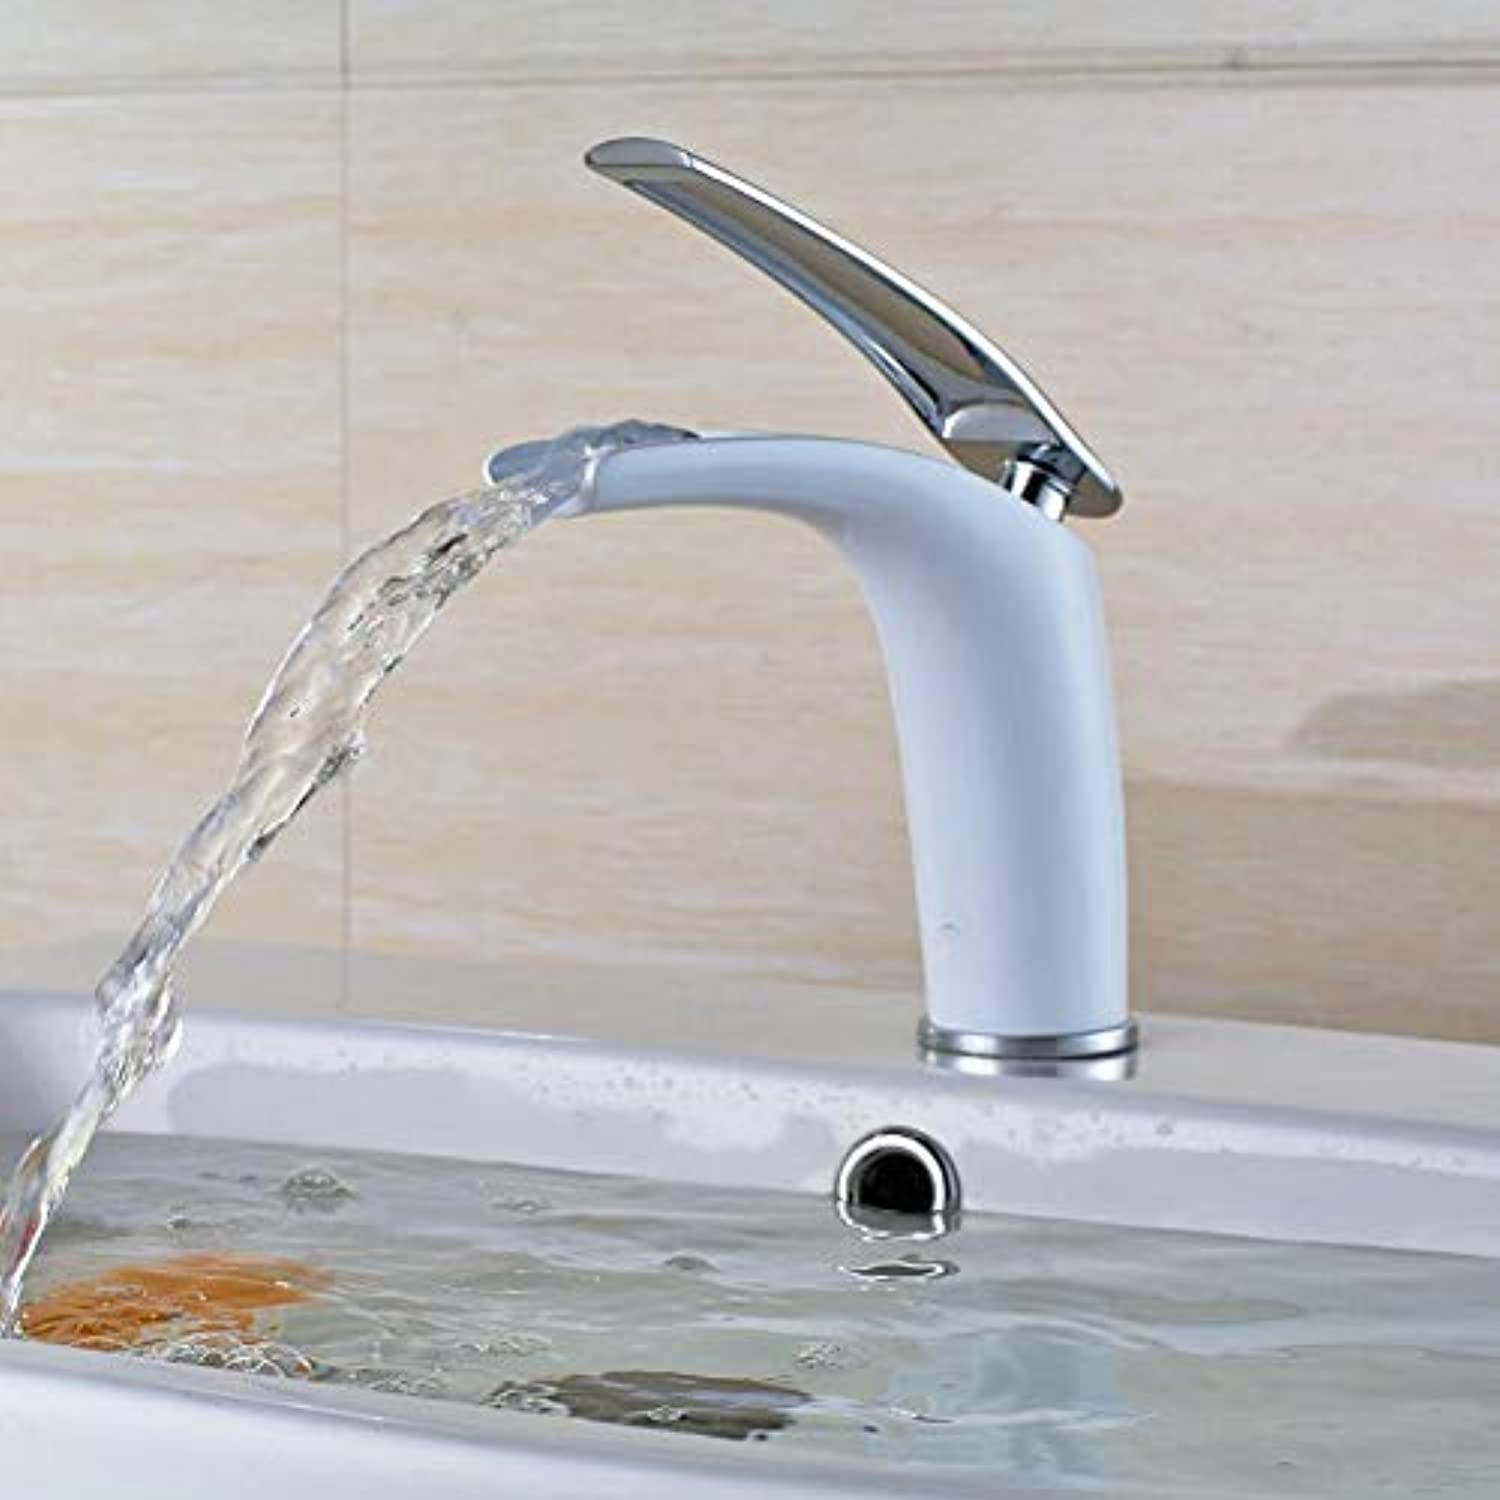 Lddpl New Arrivals Bathroom Faucet Hot and Cold White Brass Basin Faucet Waterfall Faucet Sink Faucet Single Handle Water Tap